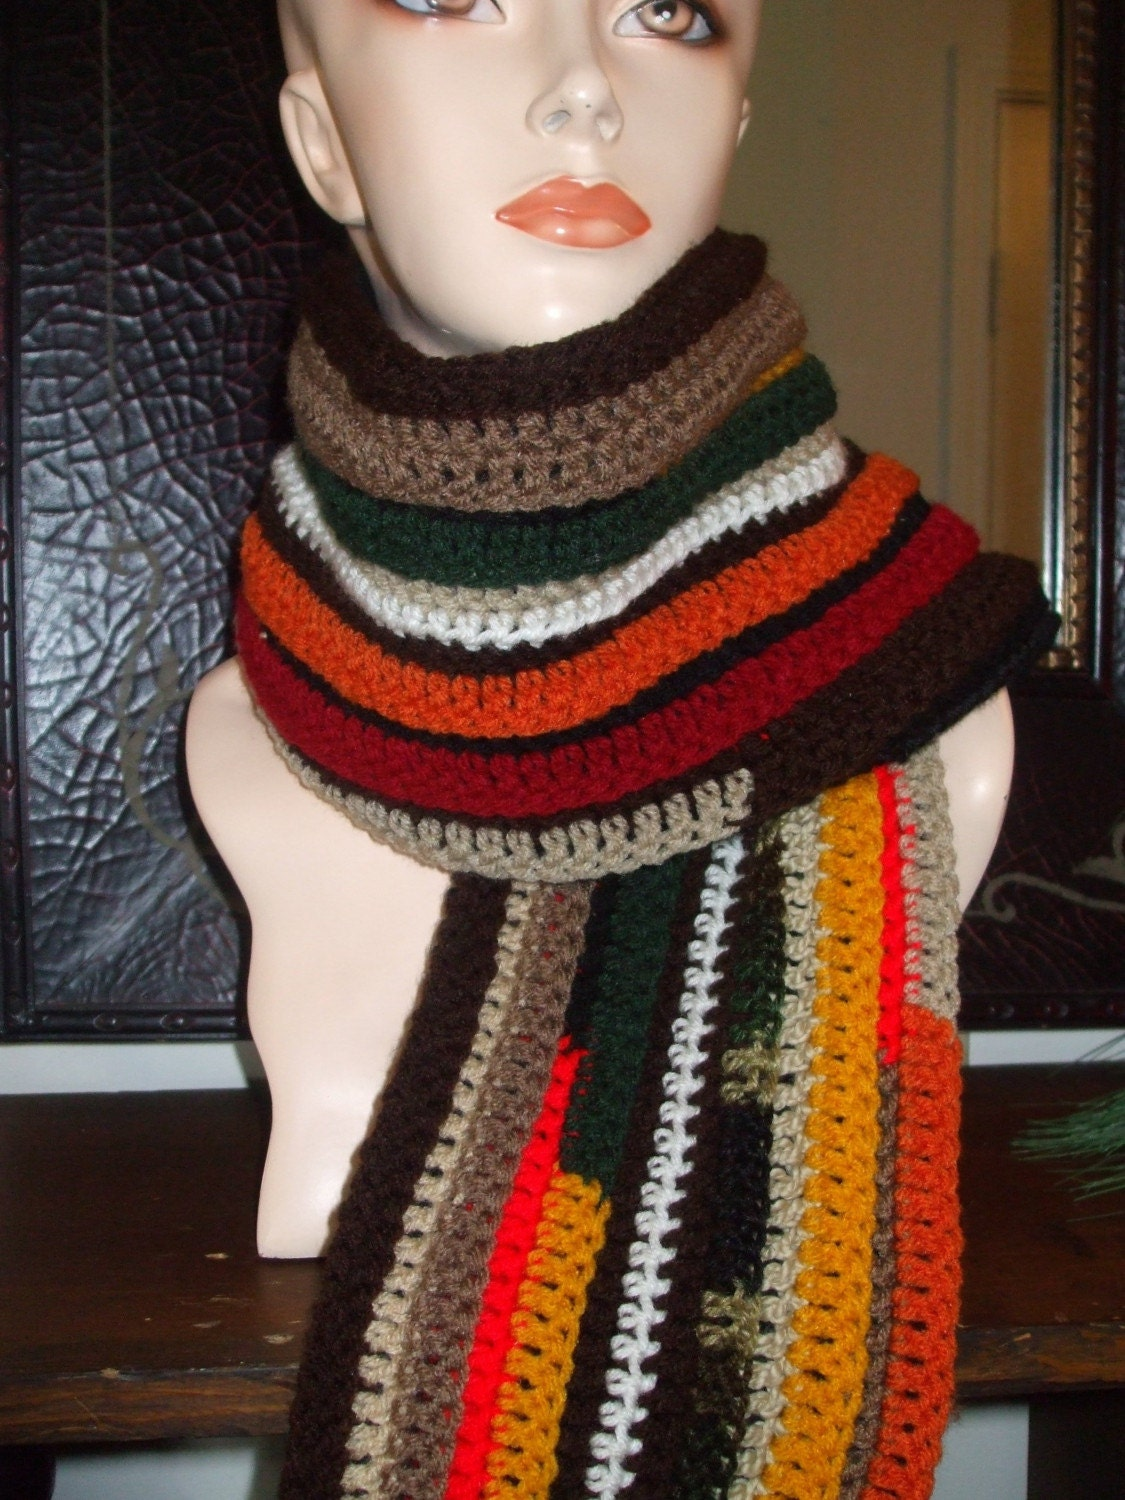 Crochet TwoSided Multi Color Scarf by veronica06 on Etsy Crochet Scarf Two Colors